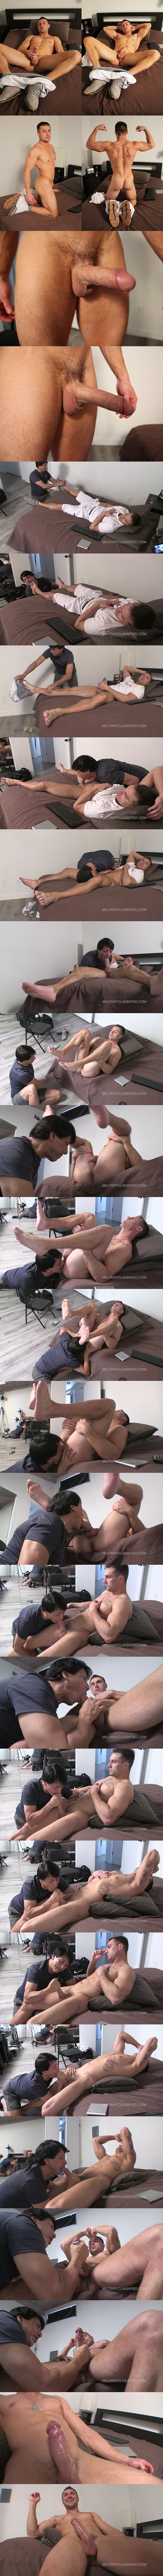 Straight beefcake Dillinger (aka Damien White and Brad) gets his feet worshiped and tight virgin ass rimmed before he gets jerked off at Militaryclassified 01